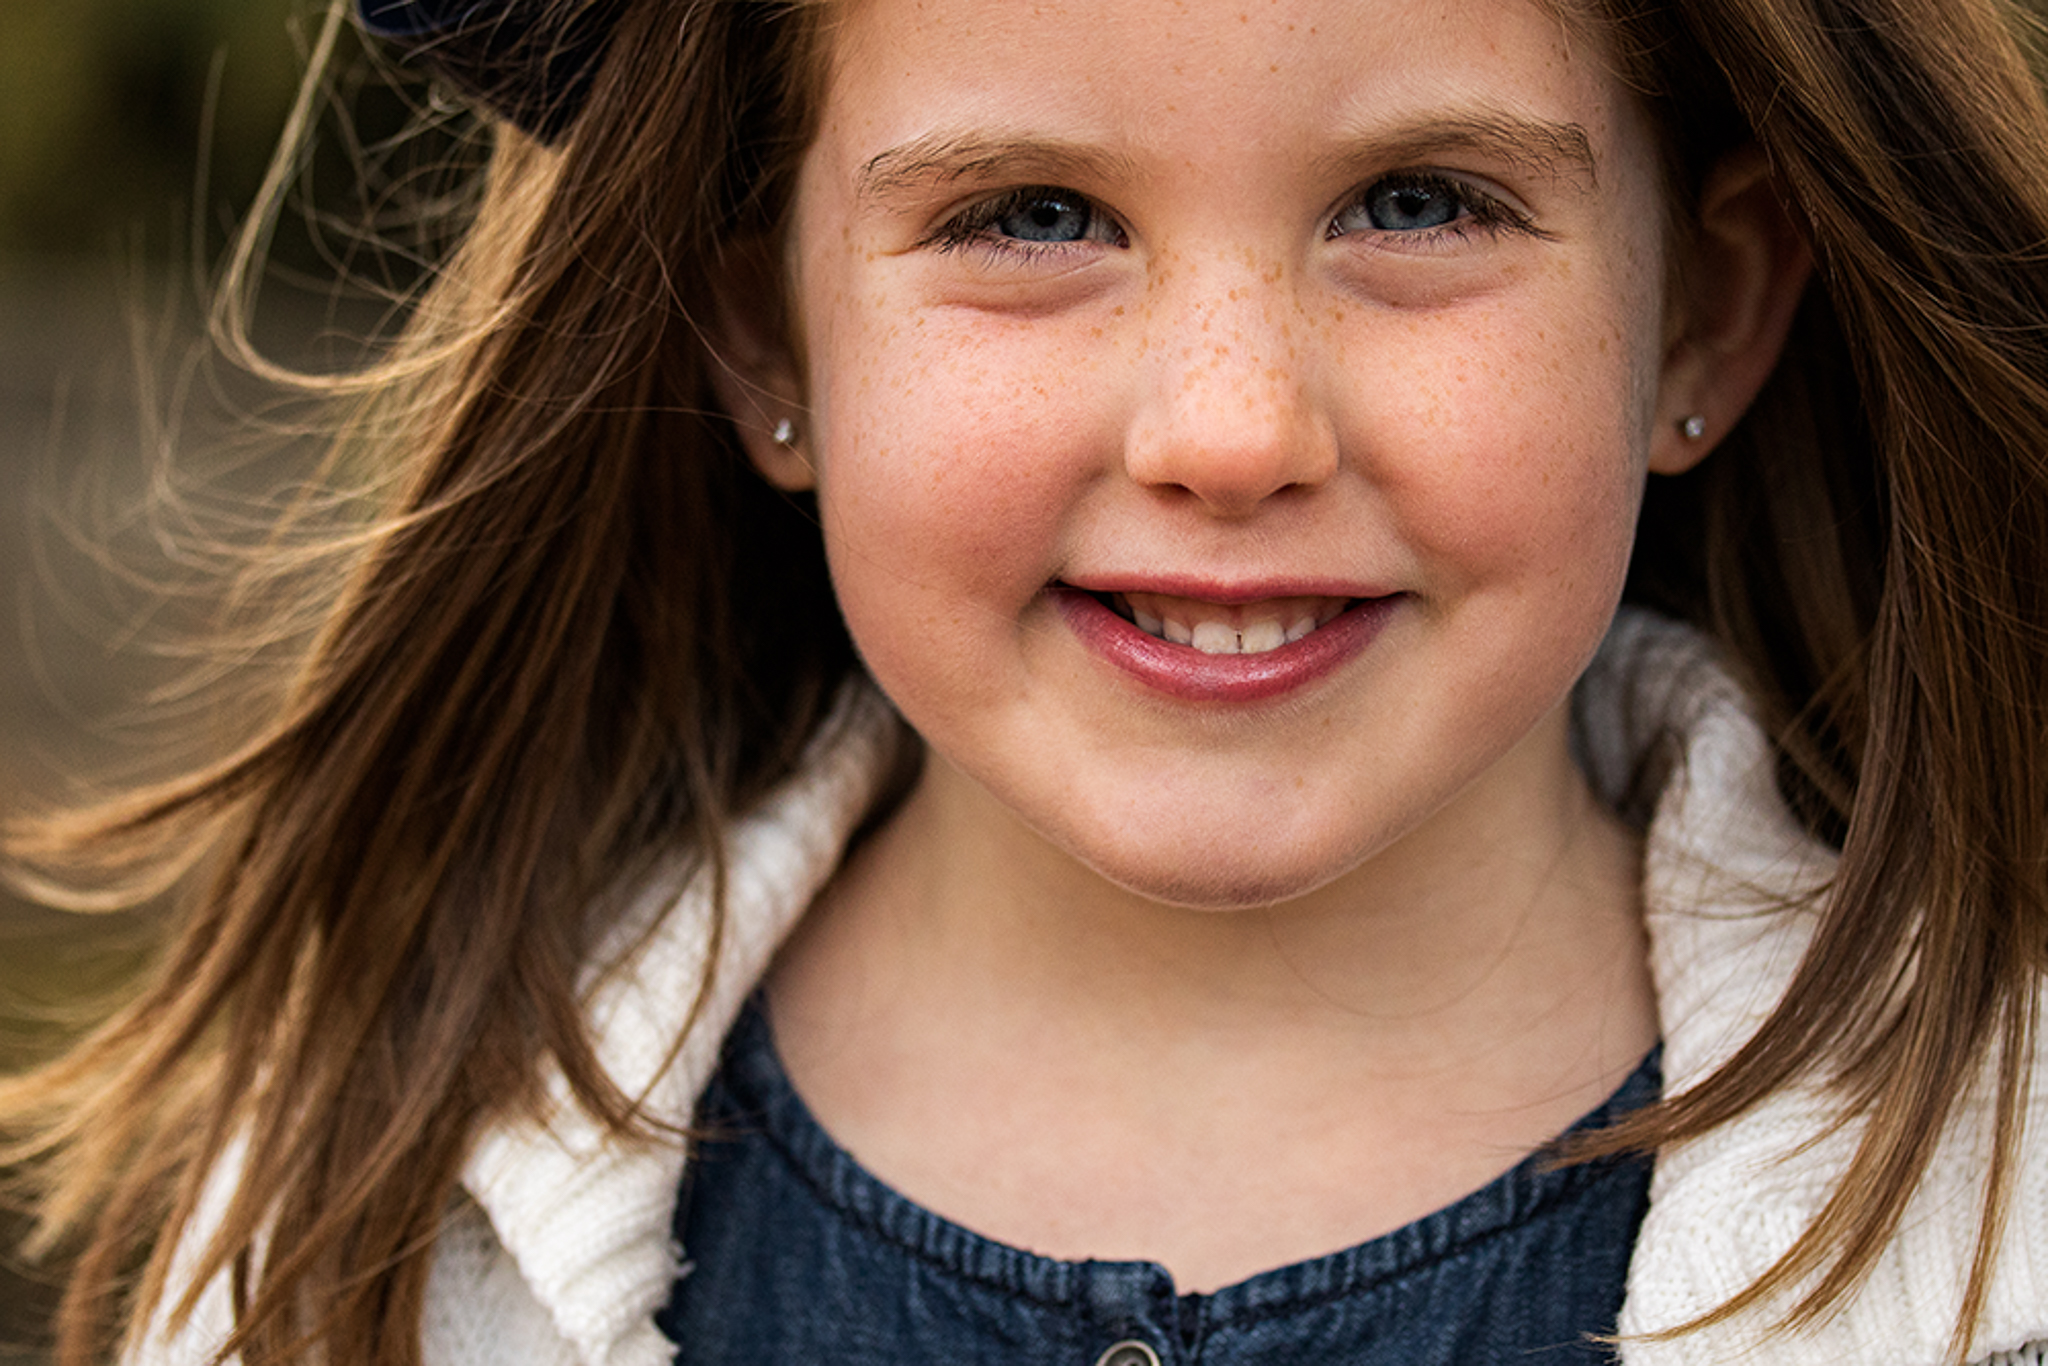 NancyElizabeth New Jersey Child Photographer |Close Up Portrait with Wind Blowing Hair